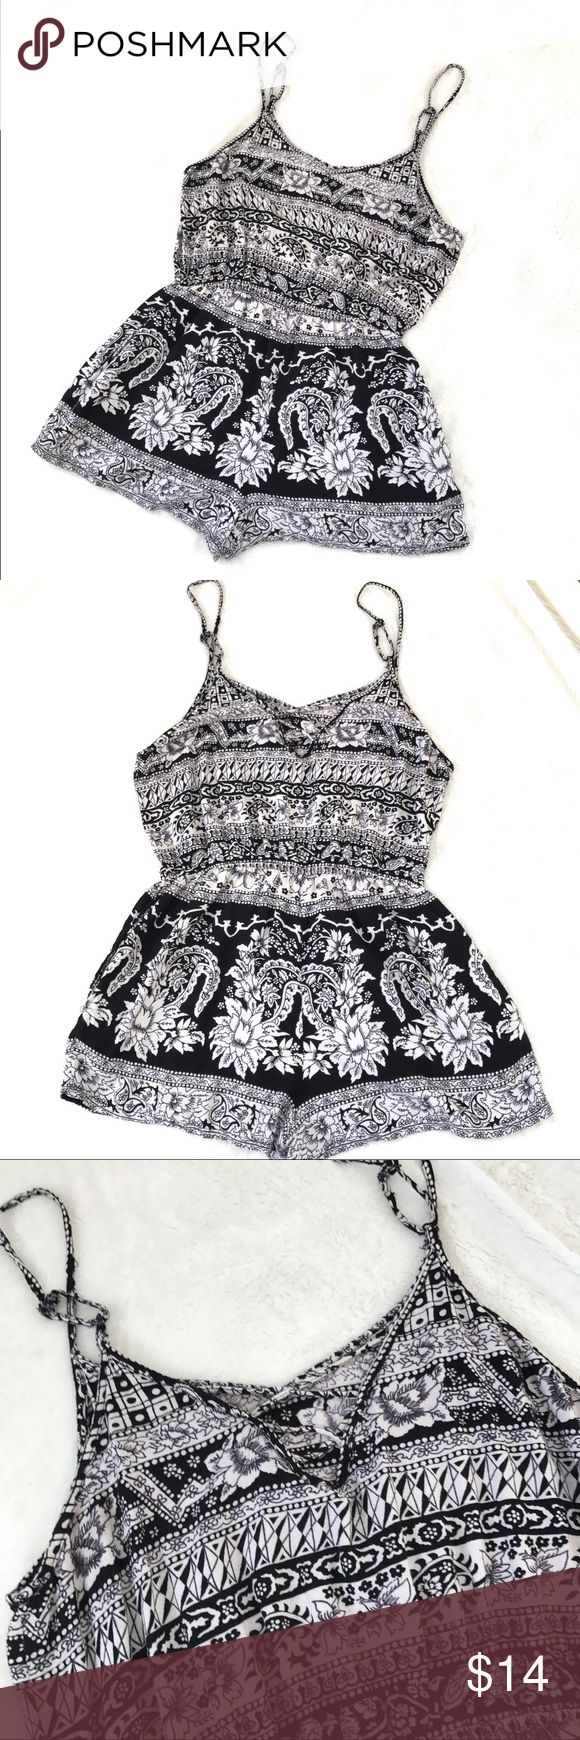 Black and white floral Romper festival Boho cute Super adorable black and white floral Romper. Elastic waistband and the straps are adjustable. Hard to see in photos but the back has cute little cross cross straps. Tag says Large so it must be juniors, I would say it would more accurately fit a small. Please see measurement photos and feel free to ask any other questions. In good preowned condition from smoke and pet free home. Dresses Mini